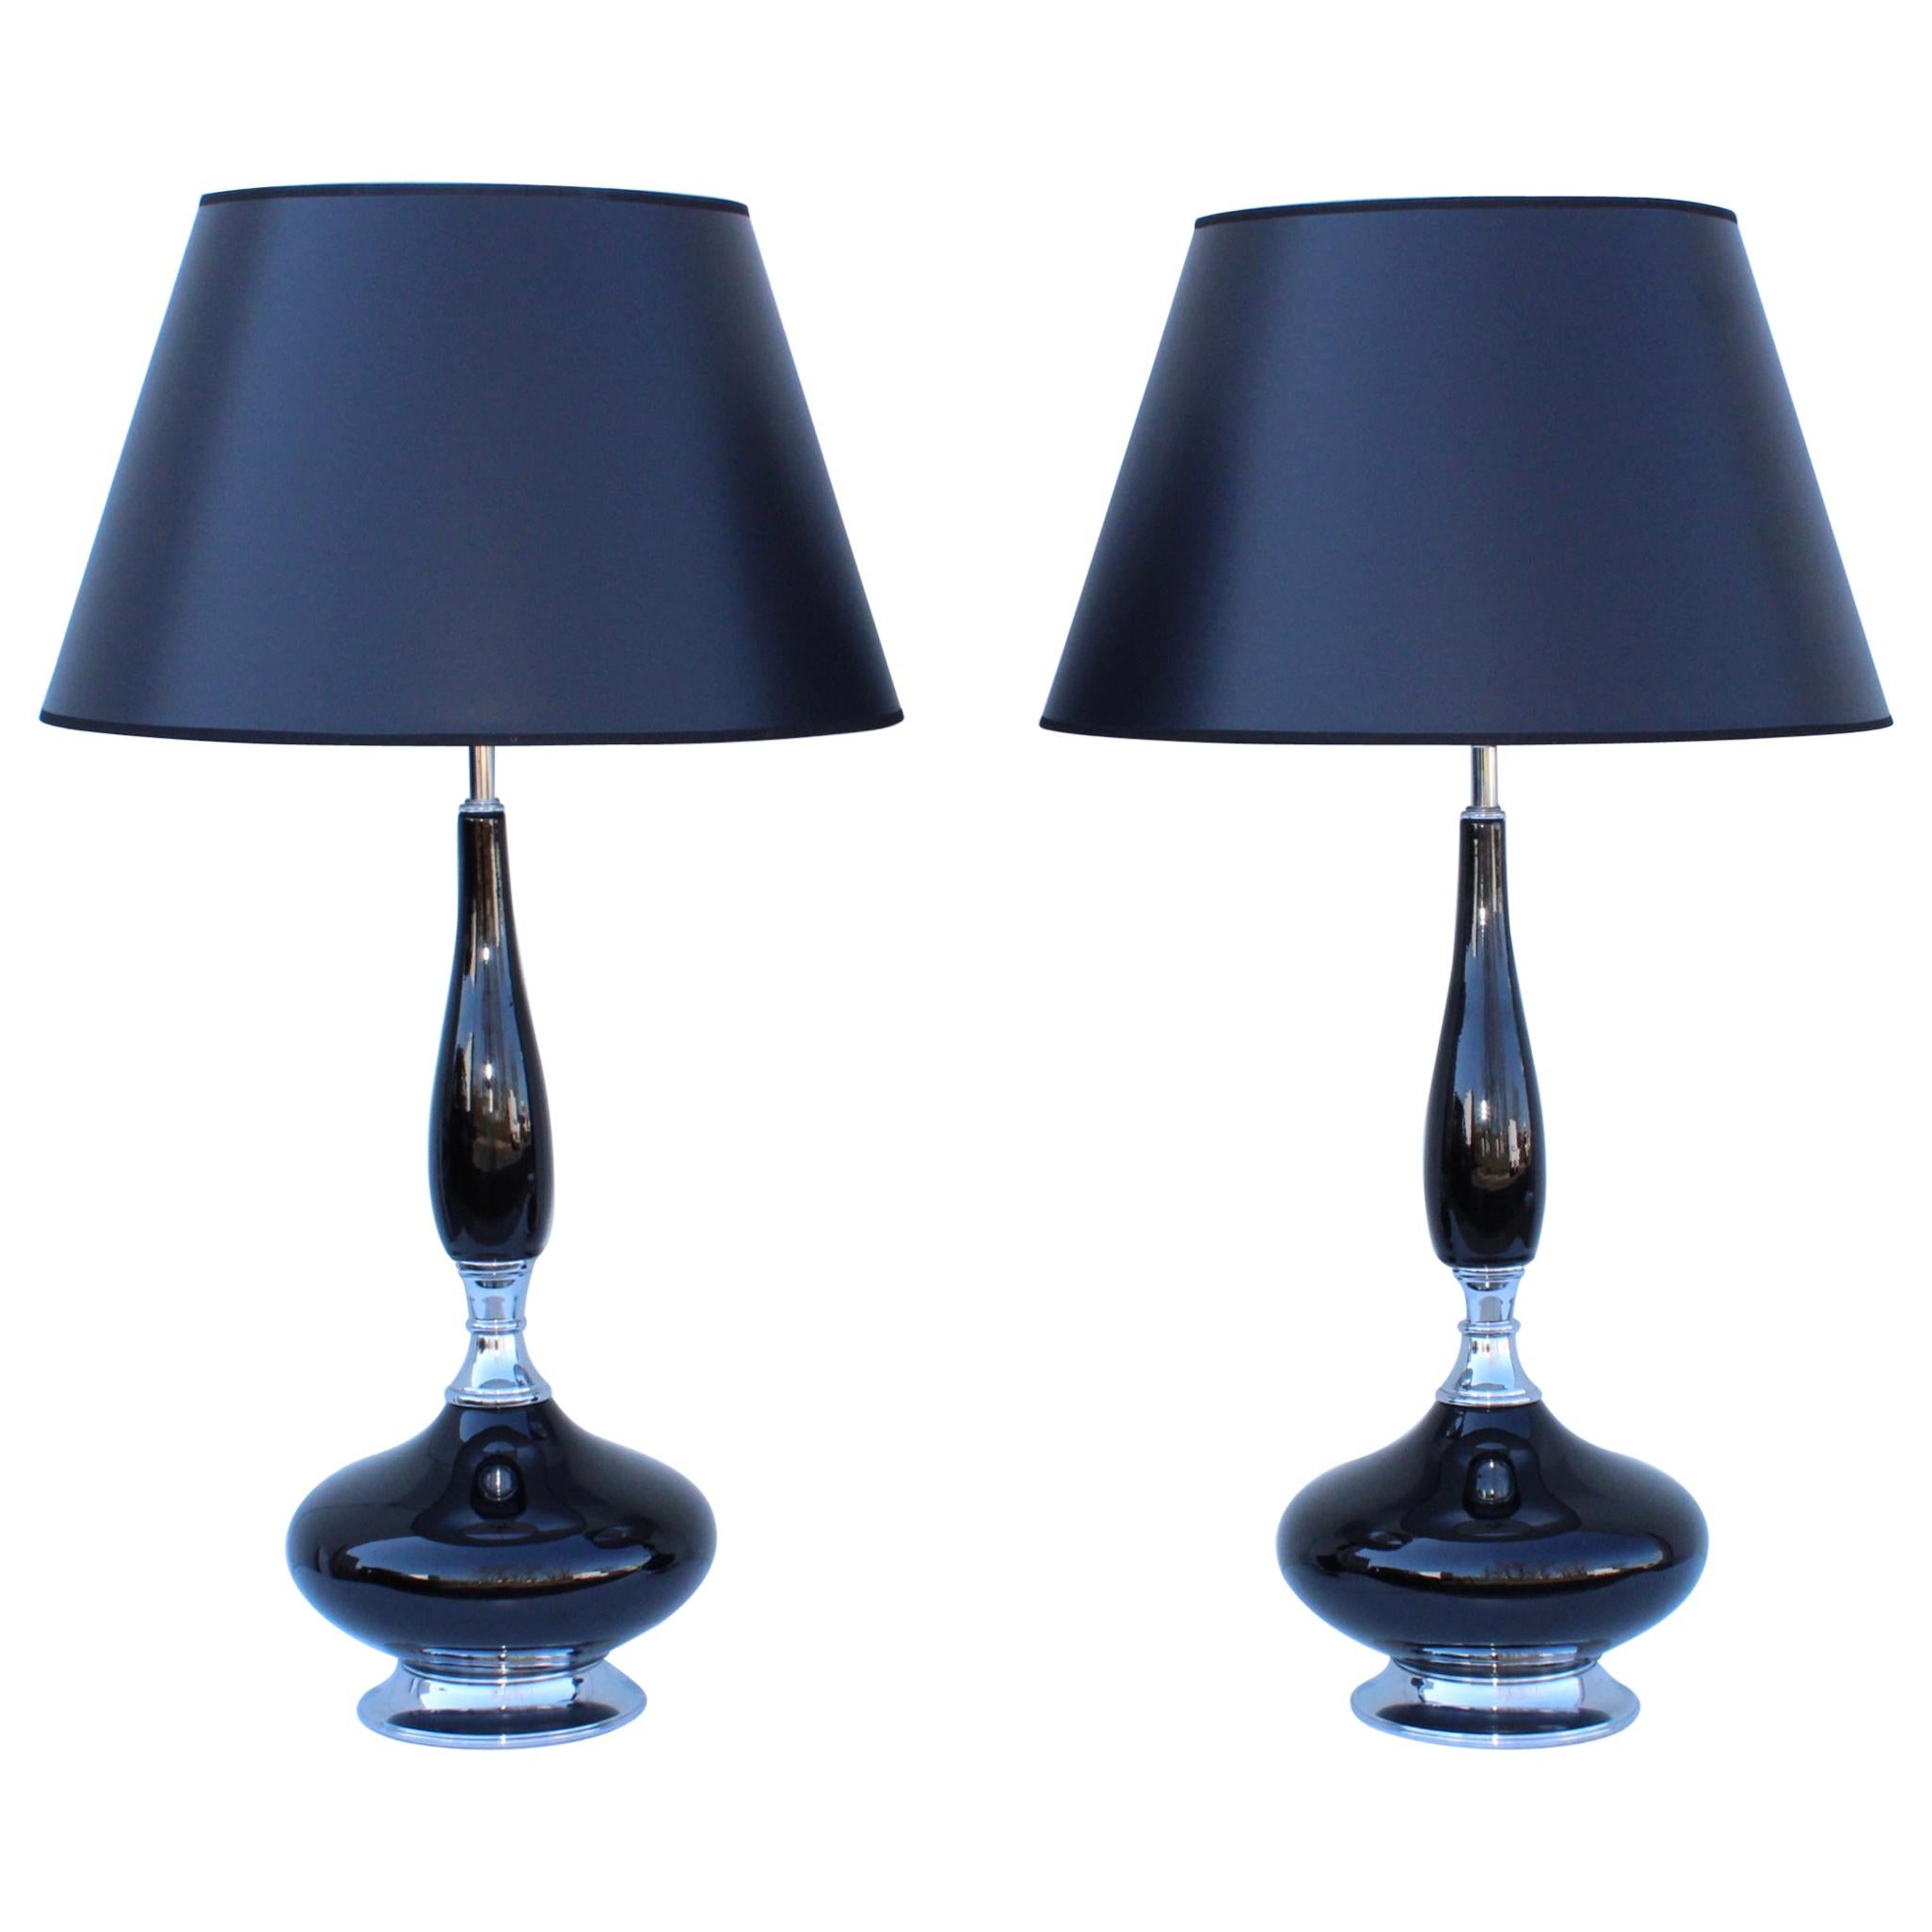 1960's Mid-Century Modern Black Ceramic and Chrome Table Lamps